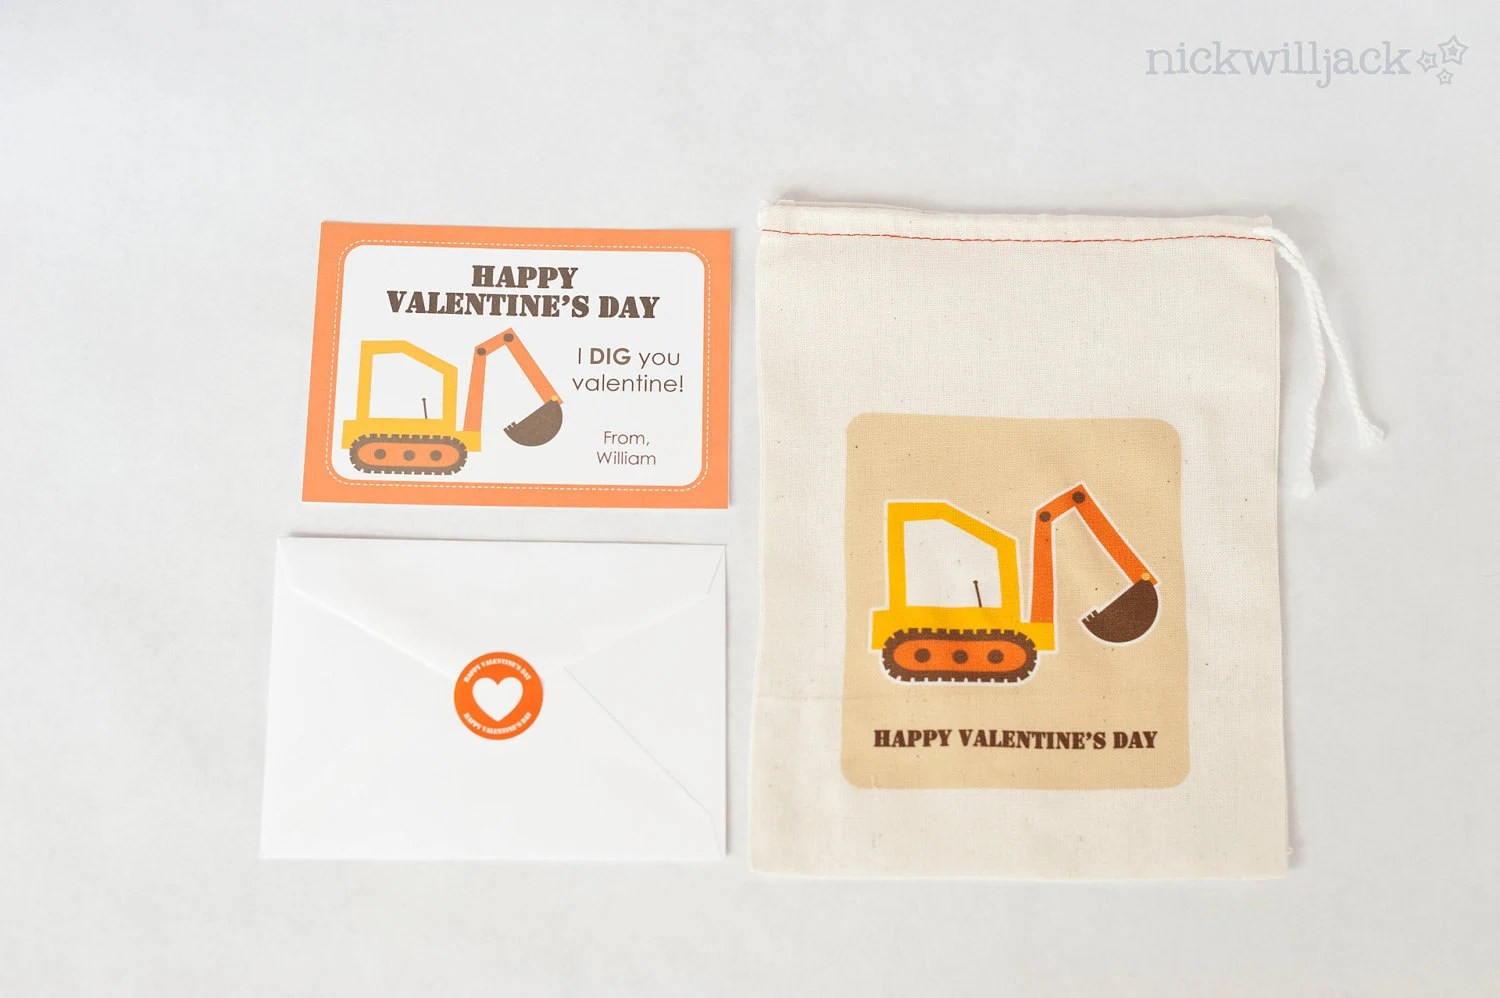 Construction Digger Valentine Card Kit By Nickwilljack On Etsy